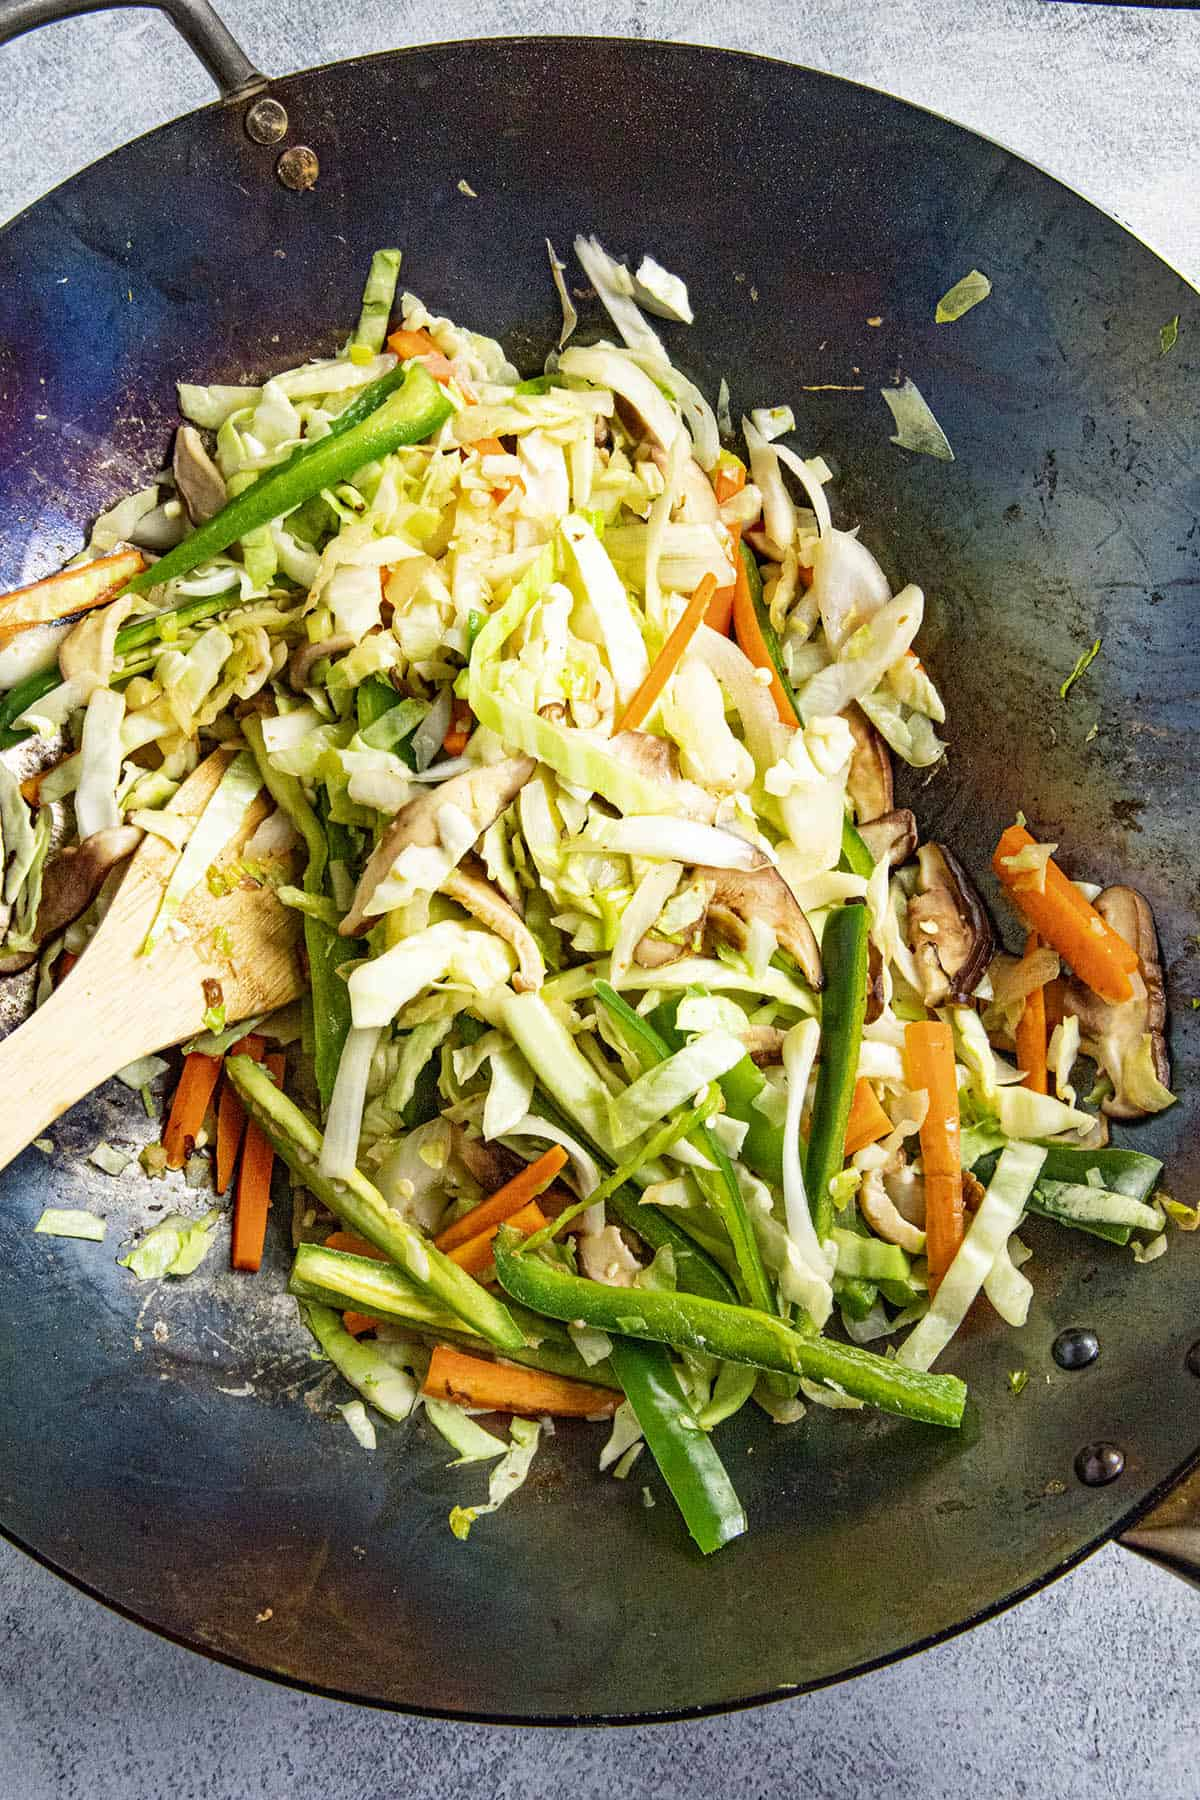 Stir frying the vegetables in the hot wok